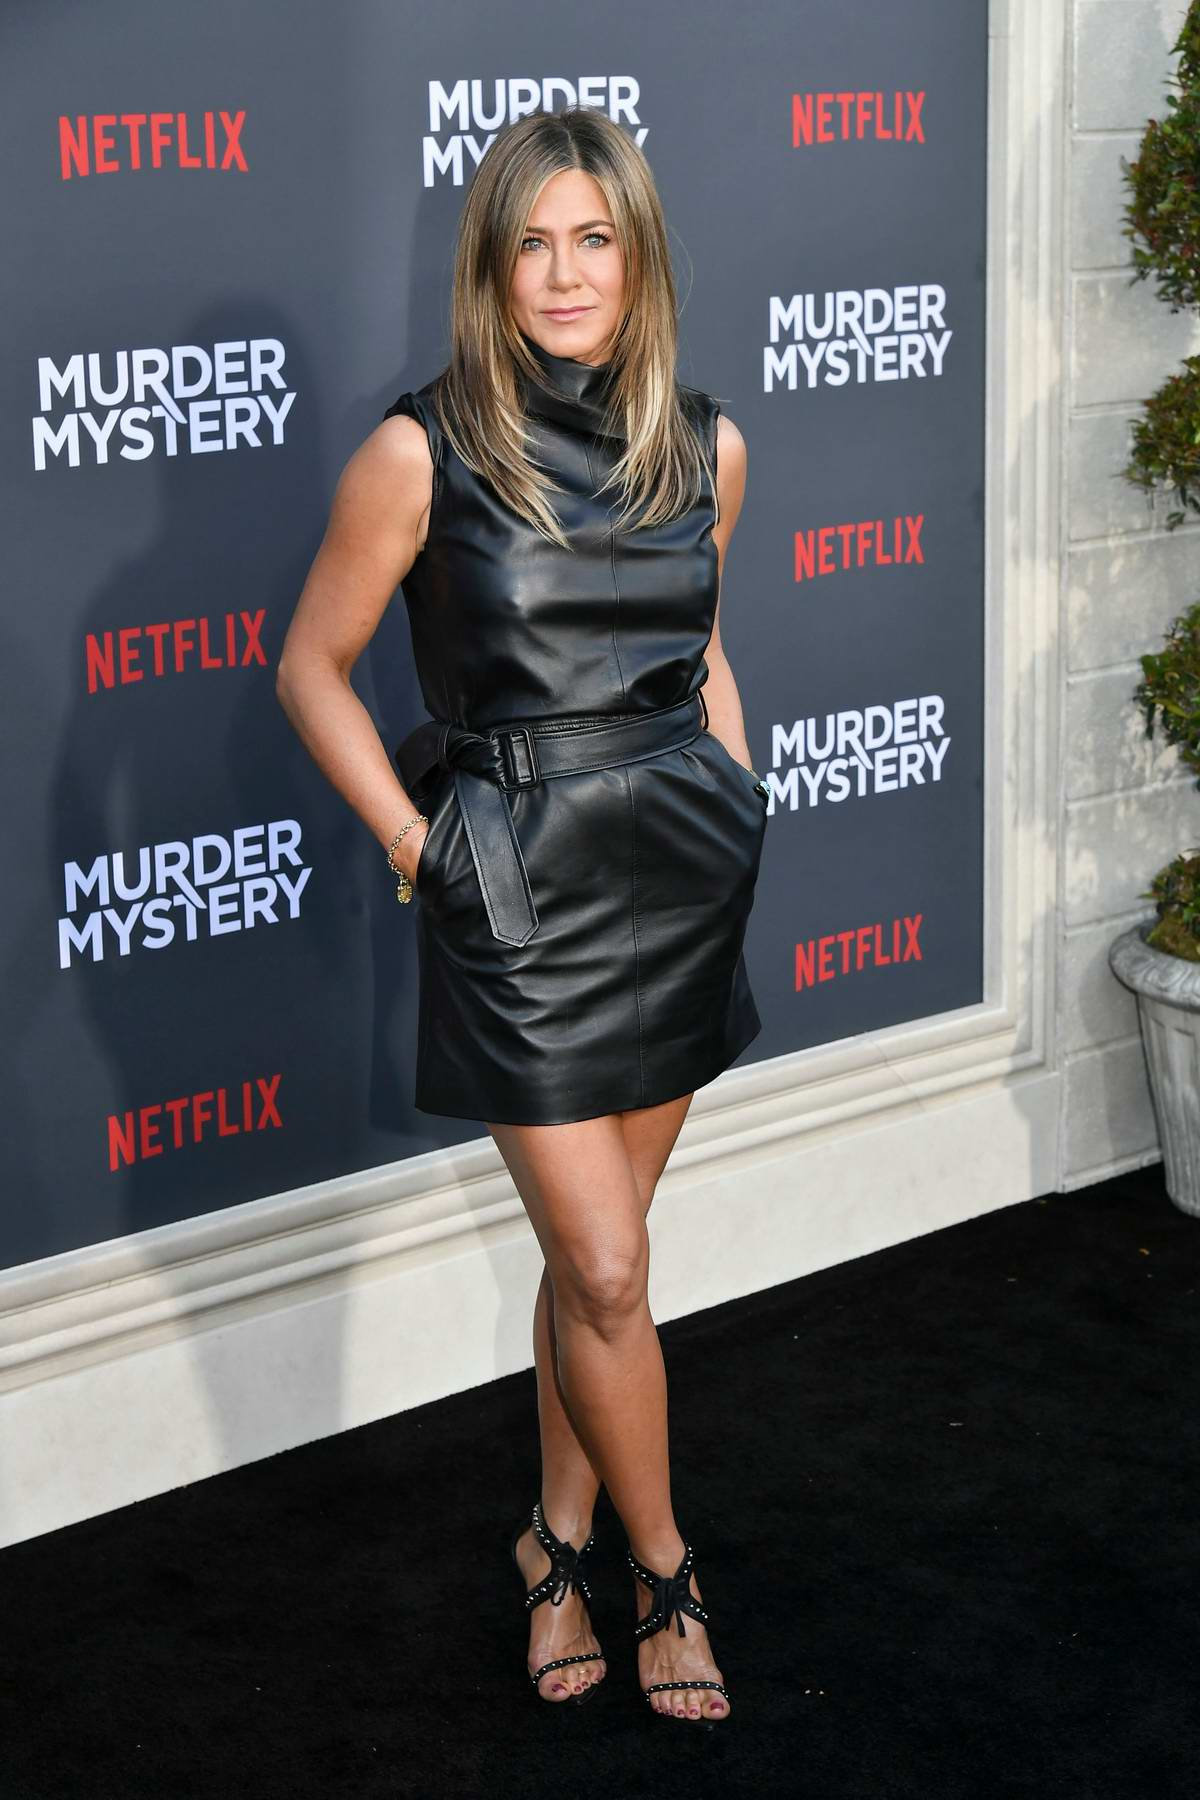 Jennifer Aniston attends the premiere of 'Murder Mystery' at Regency Village Theatre in Los Angeles